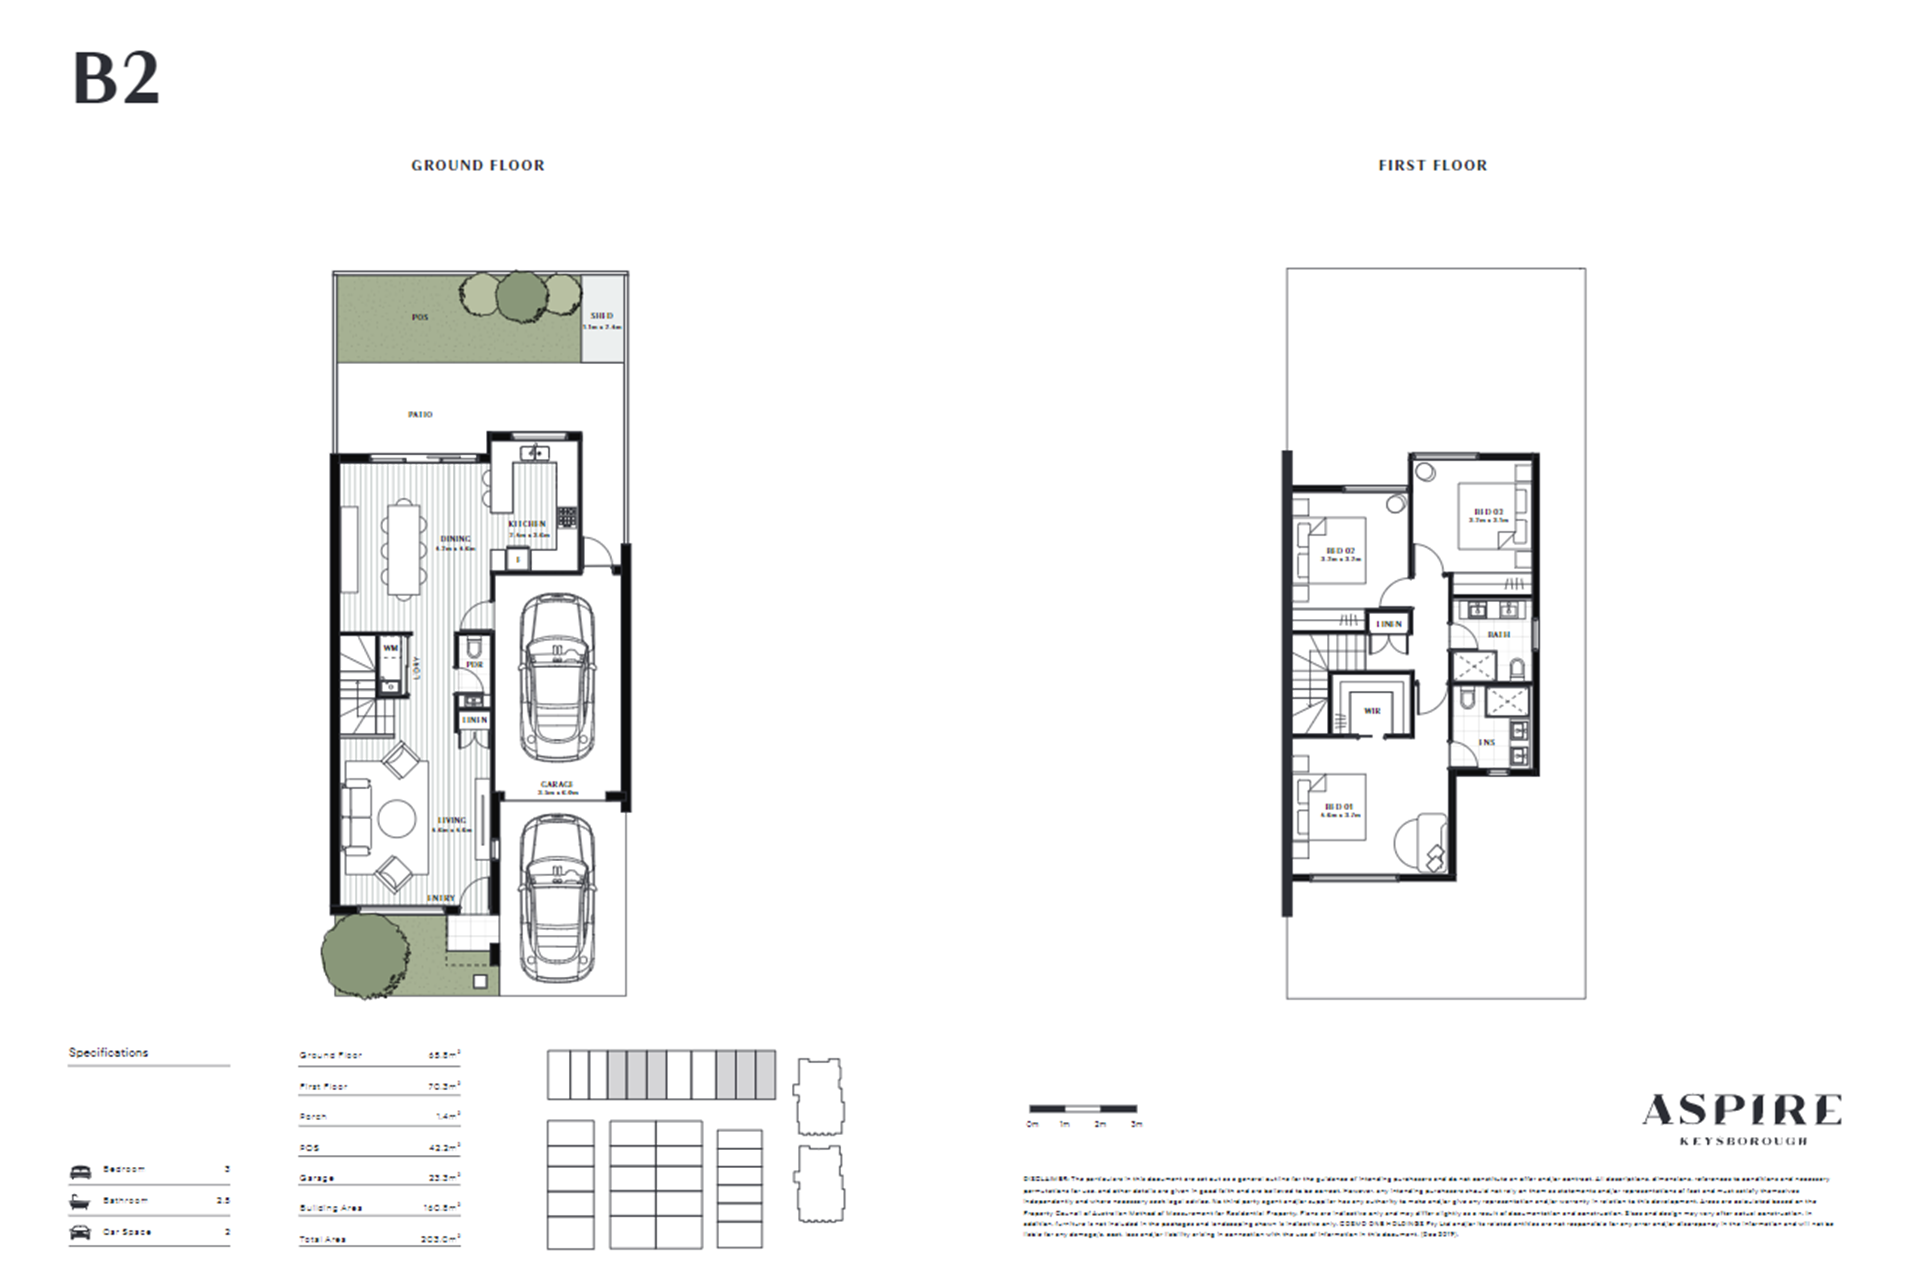 Aspire   B2 Floor Plan (Townhouse)